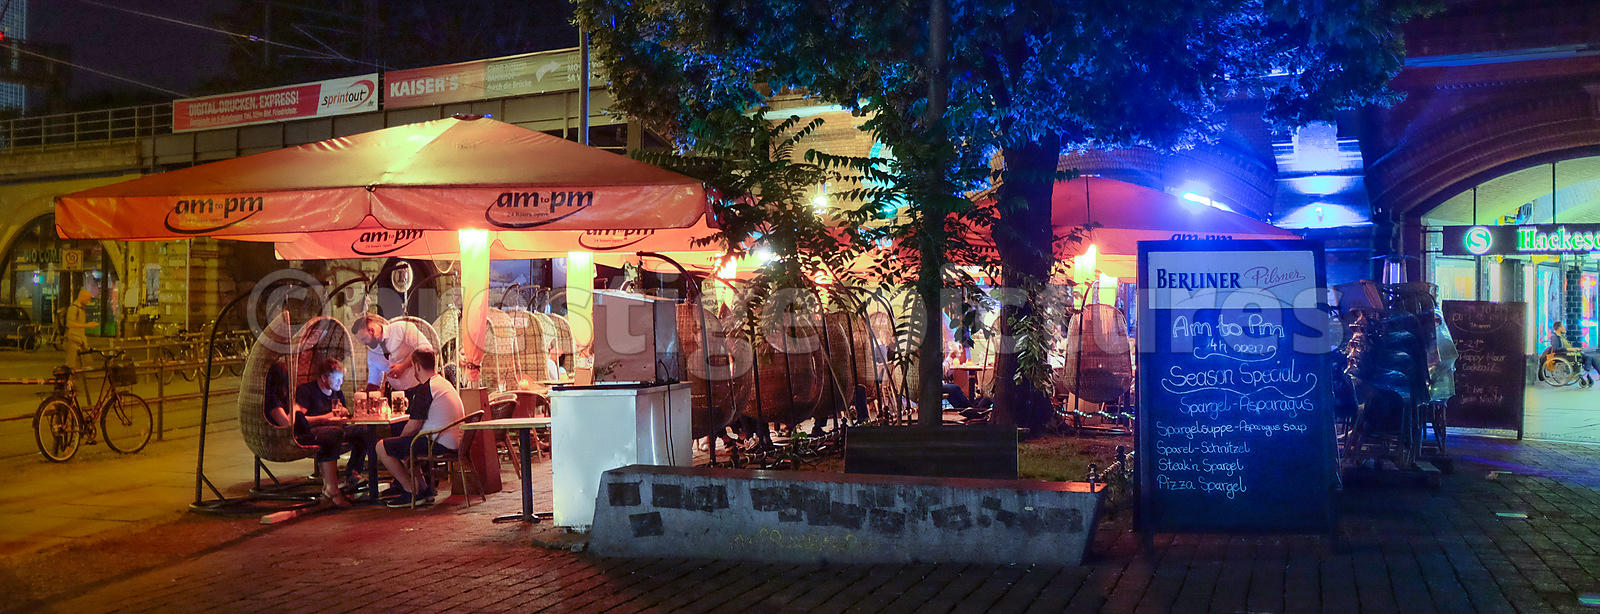 Night time DIners in an Outdoor Restaurant in Hackerscher Markt, Berlin